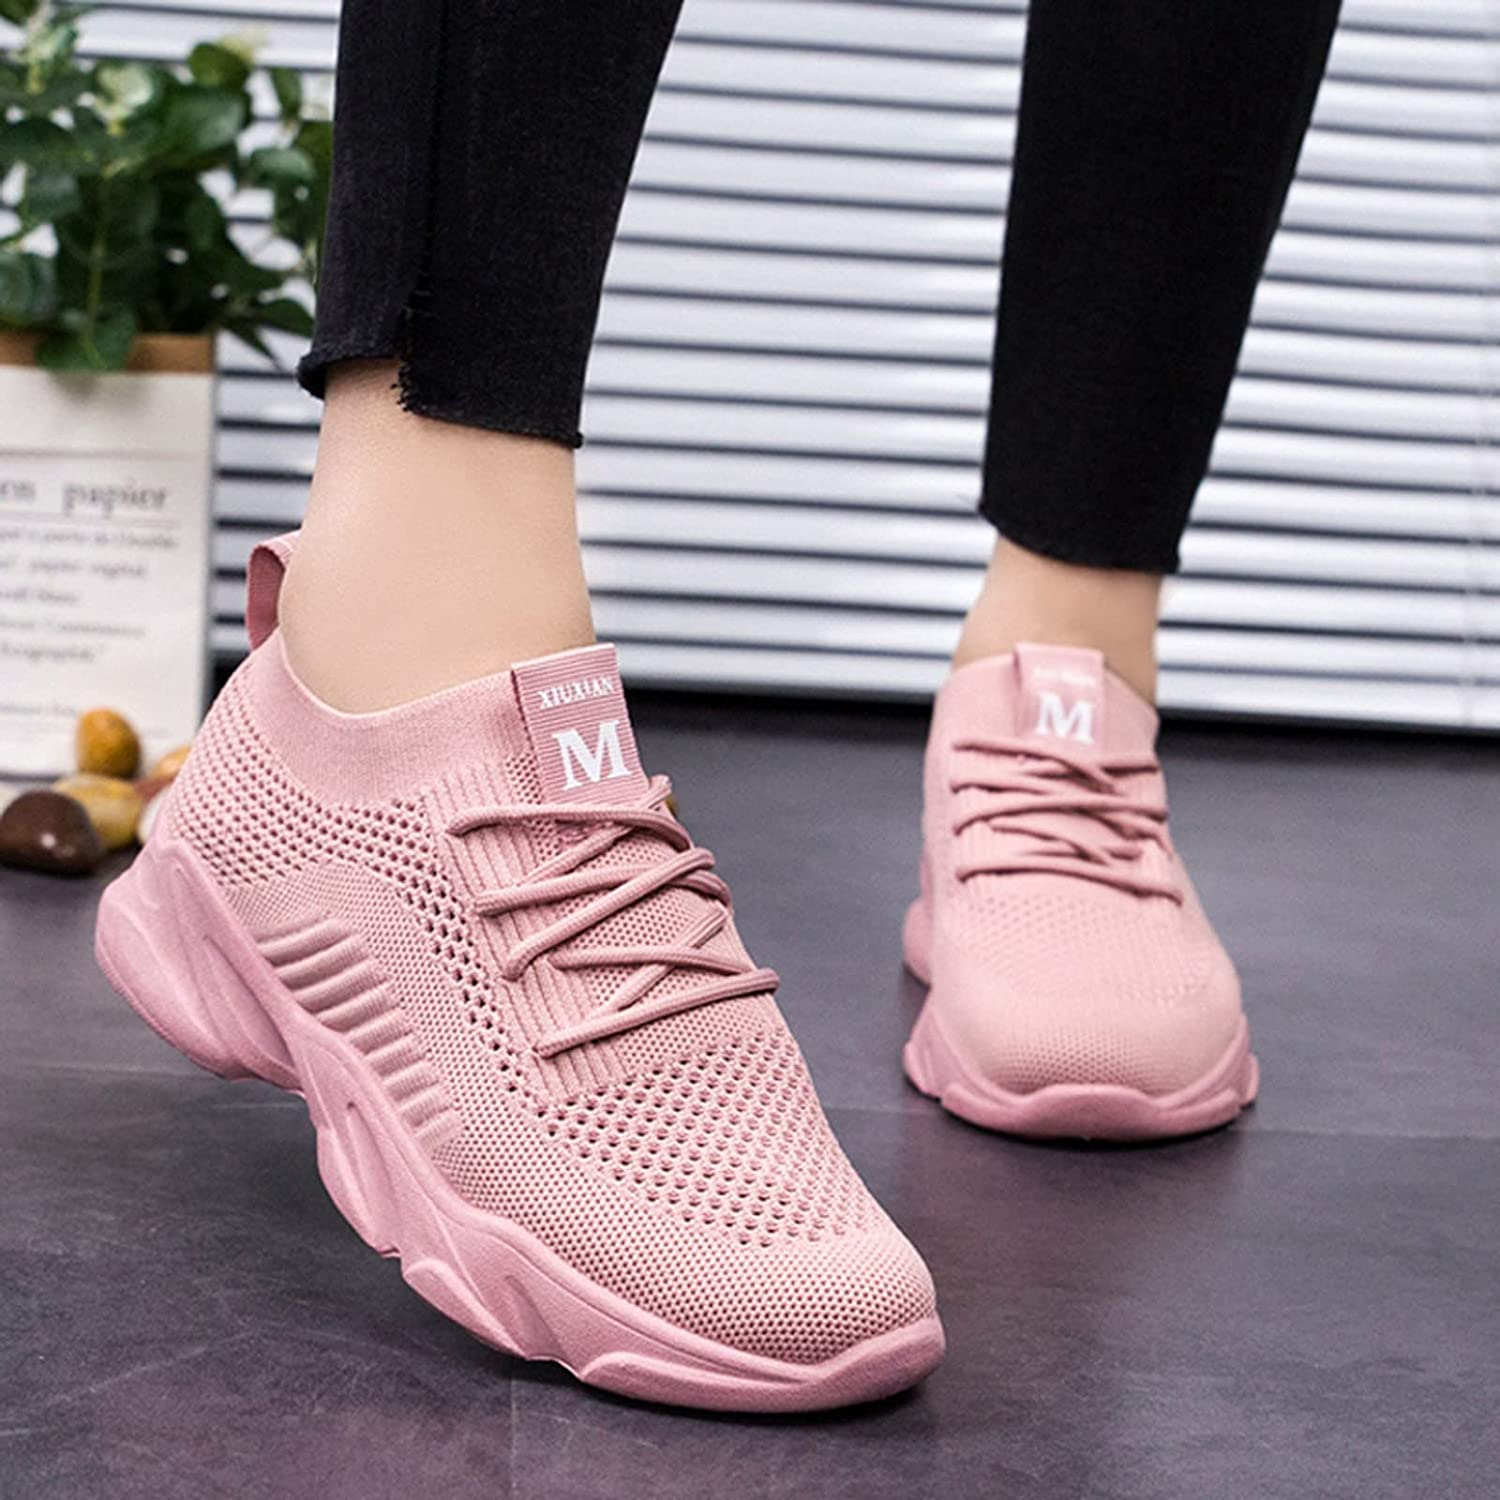 Masbird Sneakers for Women Breathable Sneakers Walking Shoes Fashion Casual Slip On Mesh Running Shoes